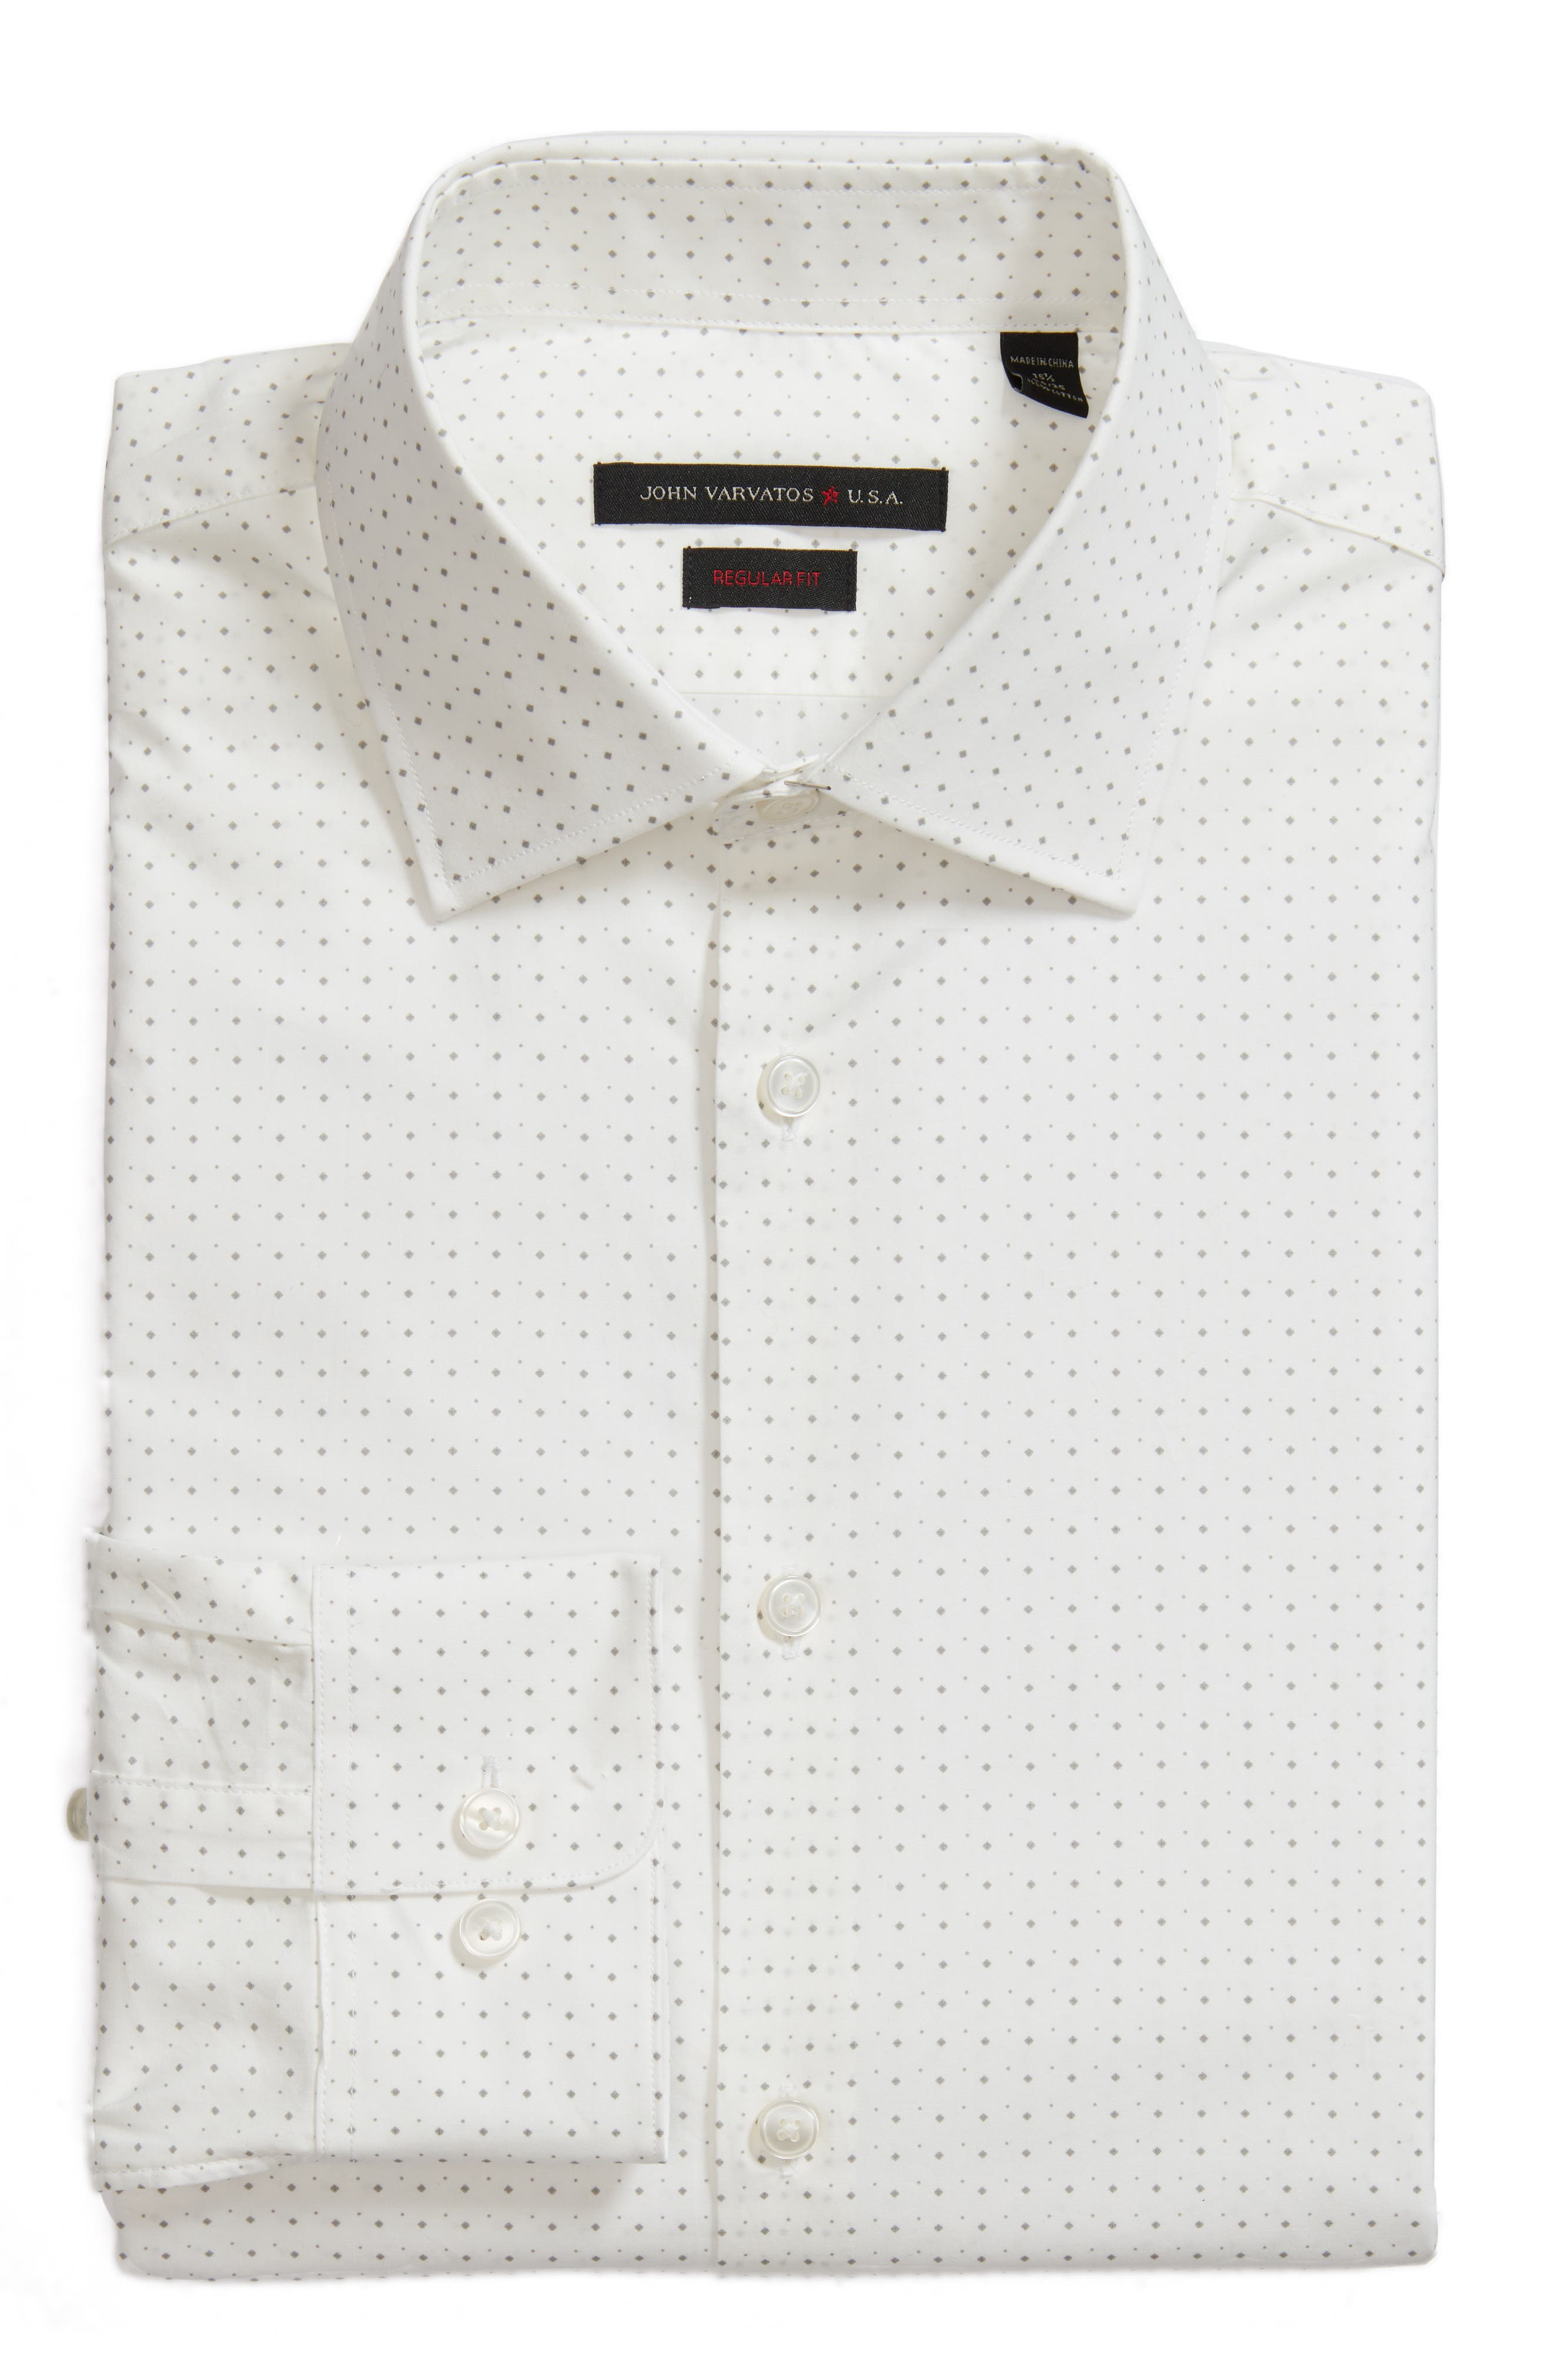 Regular Fit Diamond Dress Shirt,                             Alternate thumbnail 6, color,                             Griffin Grey